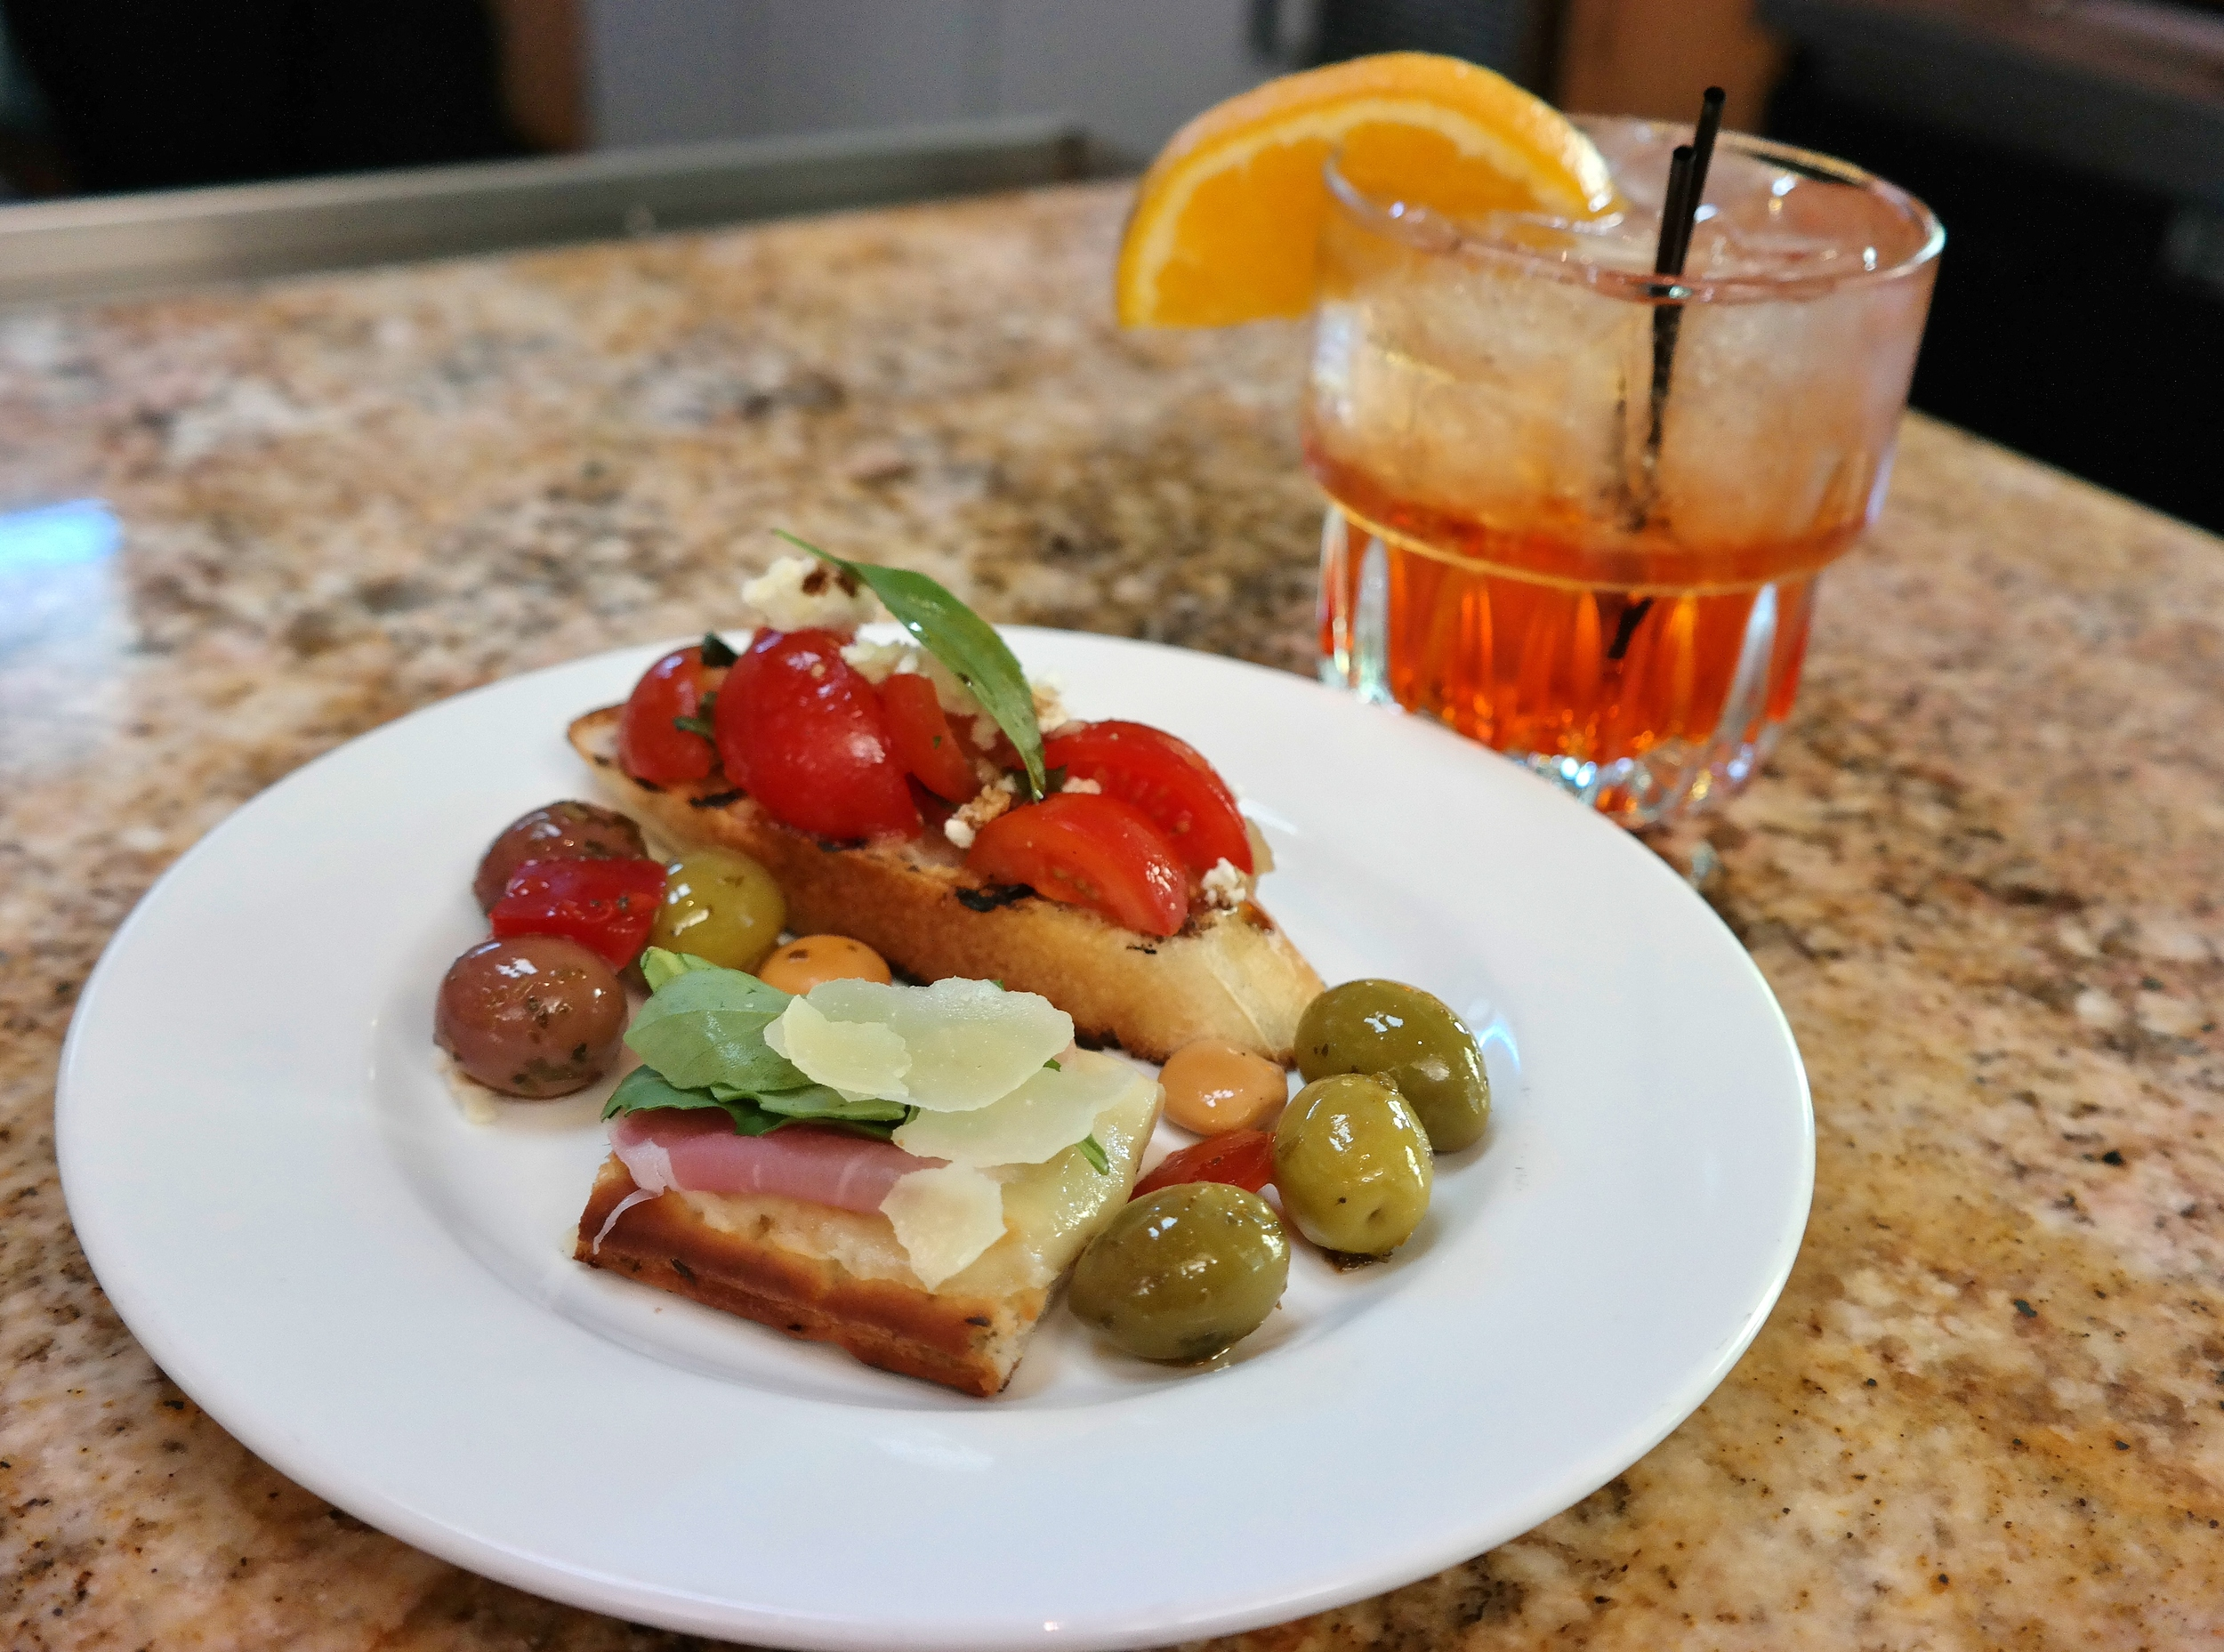 New-Groni (Bulldog gin, white vermouth, fruit infused-Aperol, orange bitters) with bruschetta, olives, pickled lupini beans, and prosciutto flatbread.